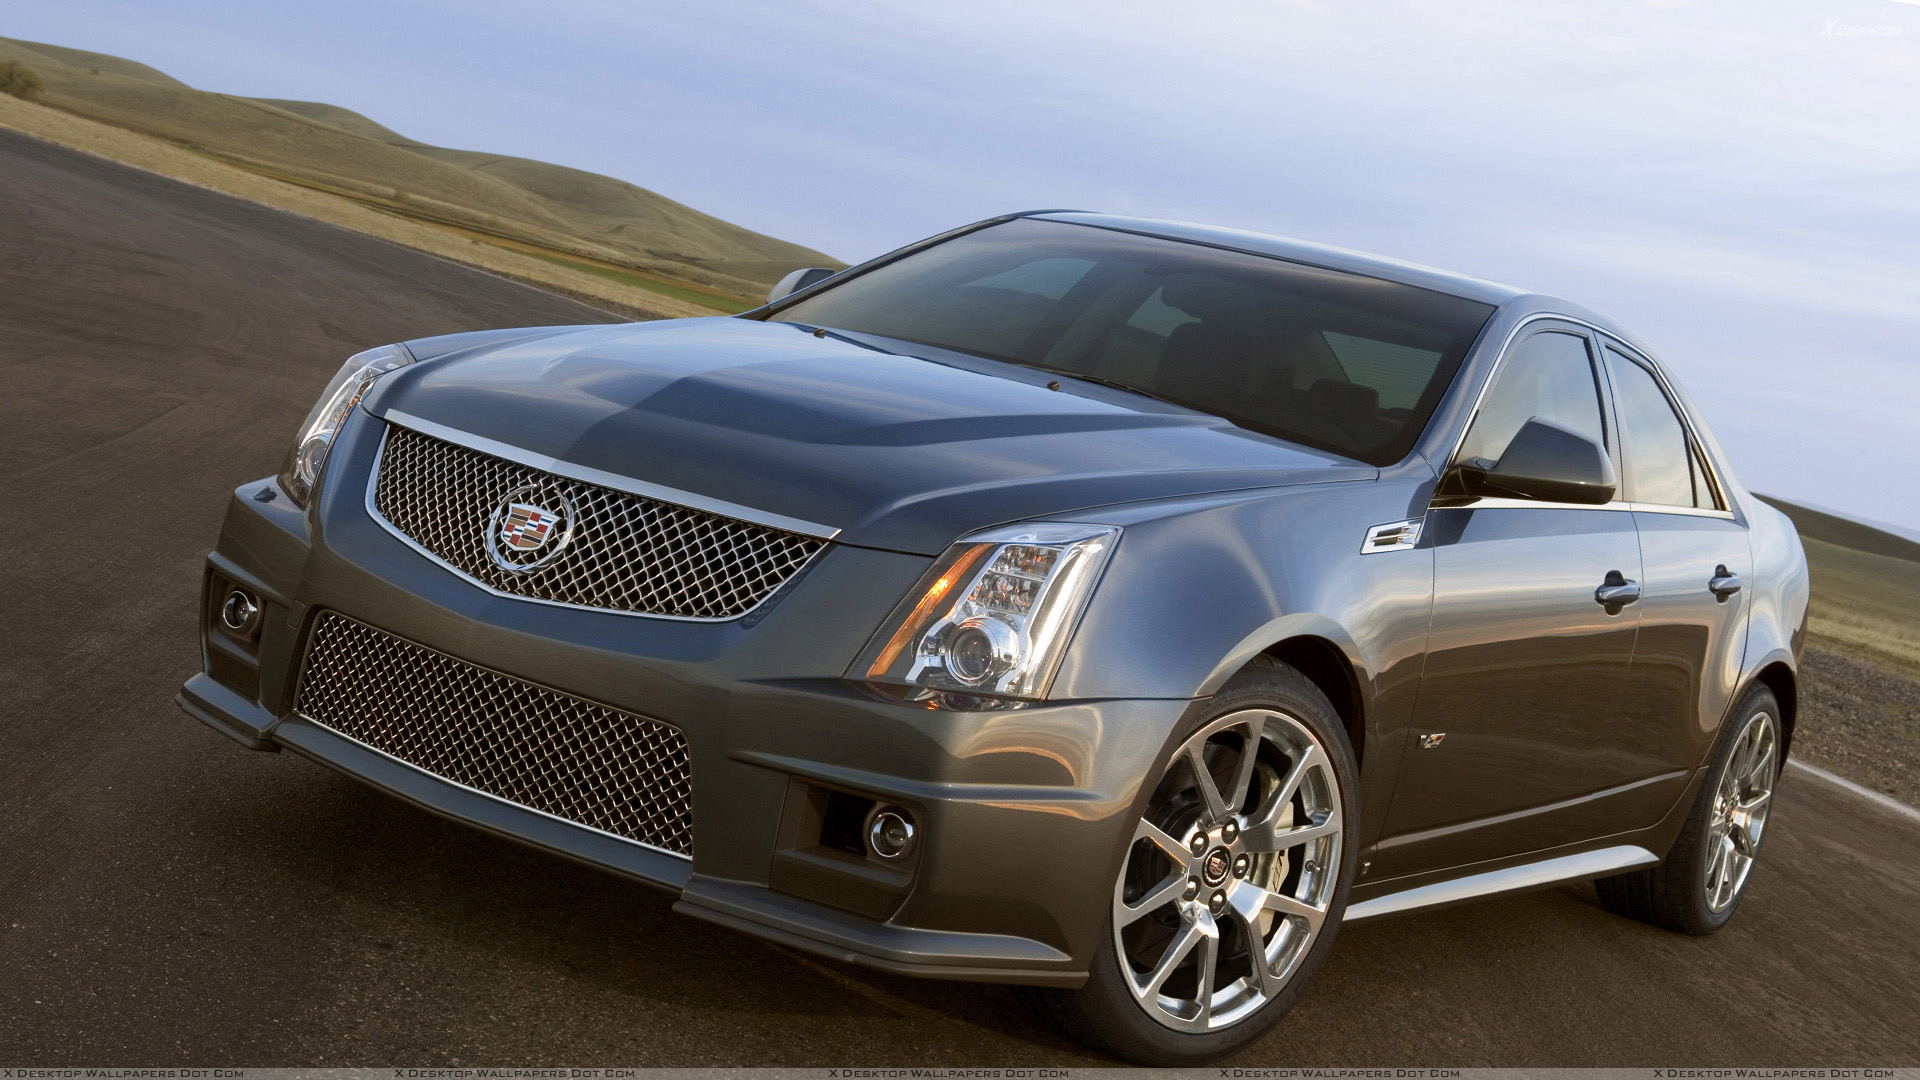 CADILLAC CTS-V SPORT brown